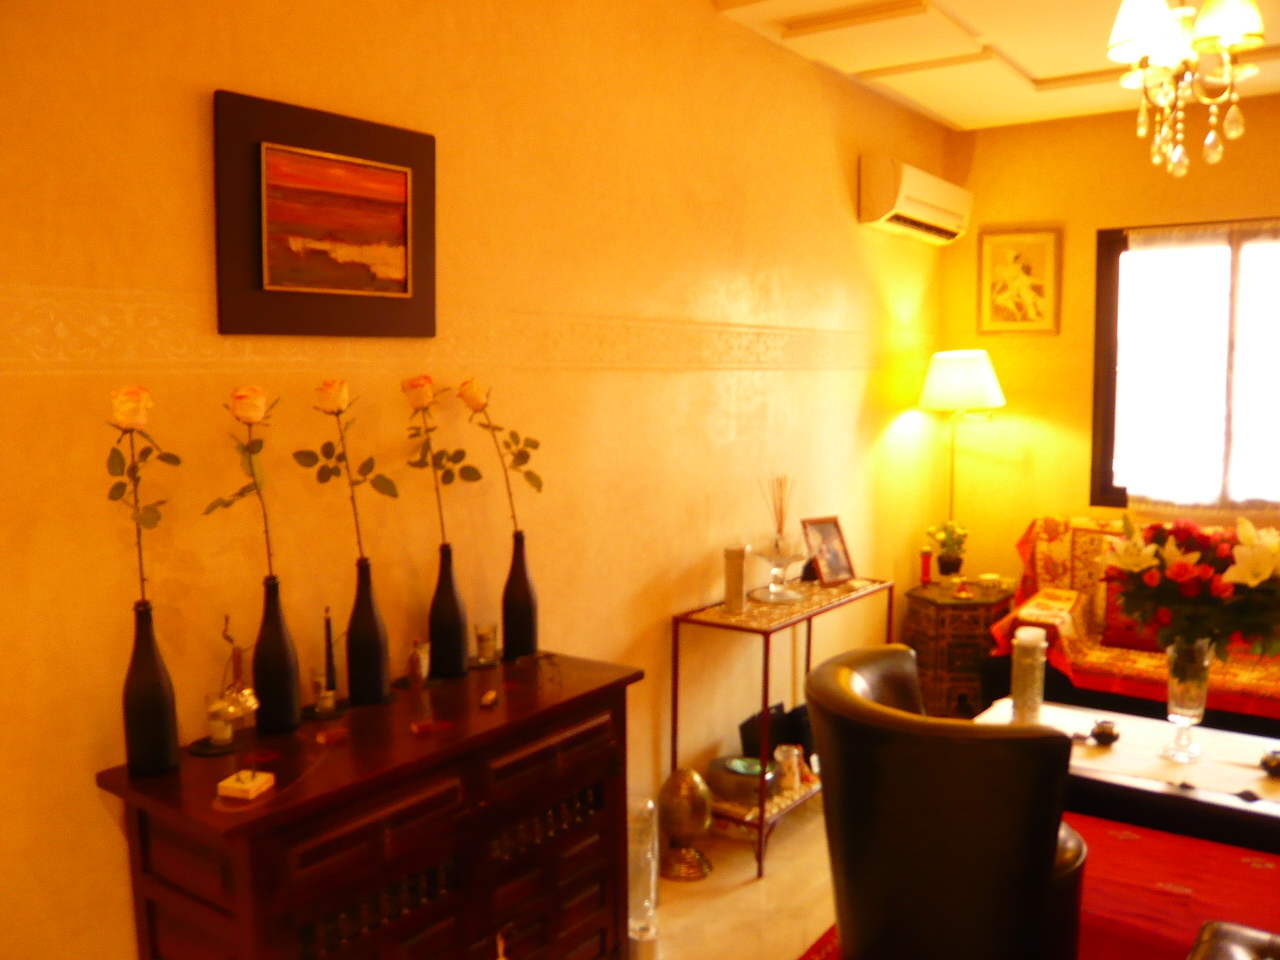 Image appartement en vente Marrakech 1